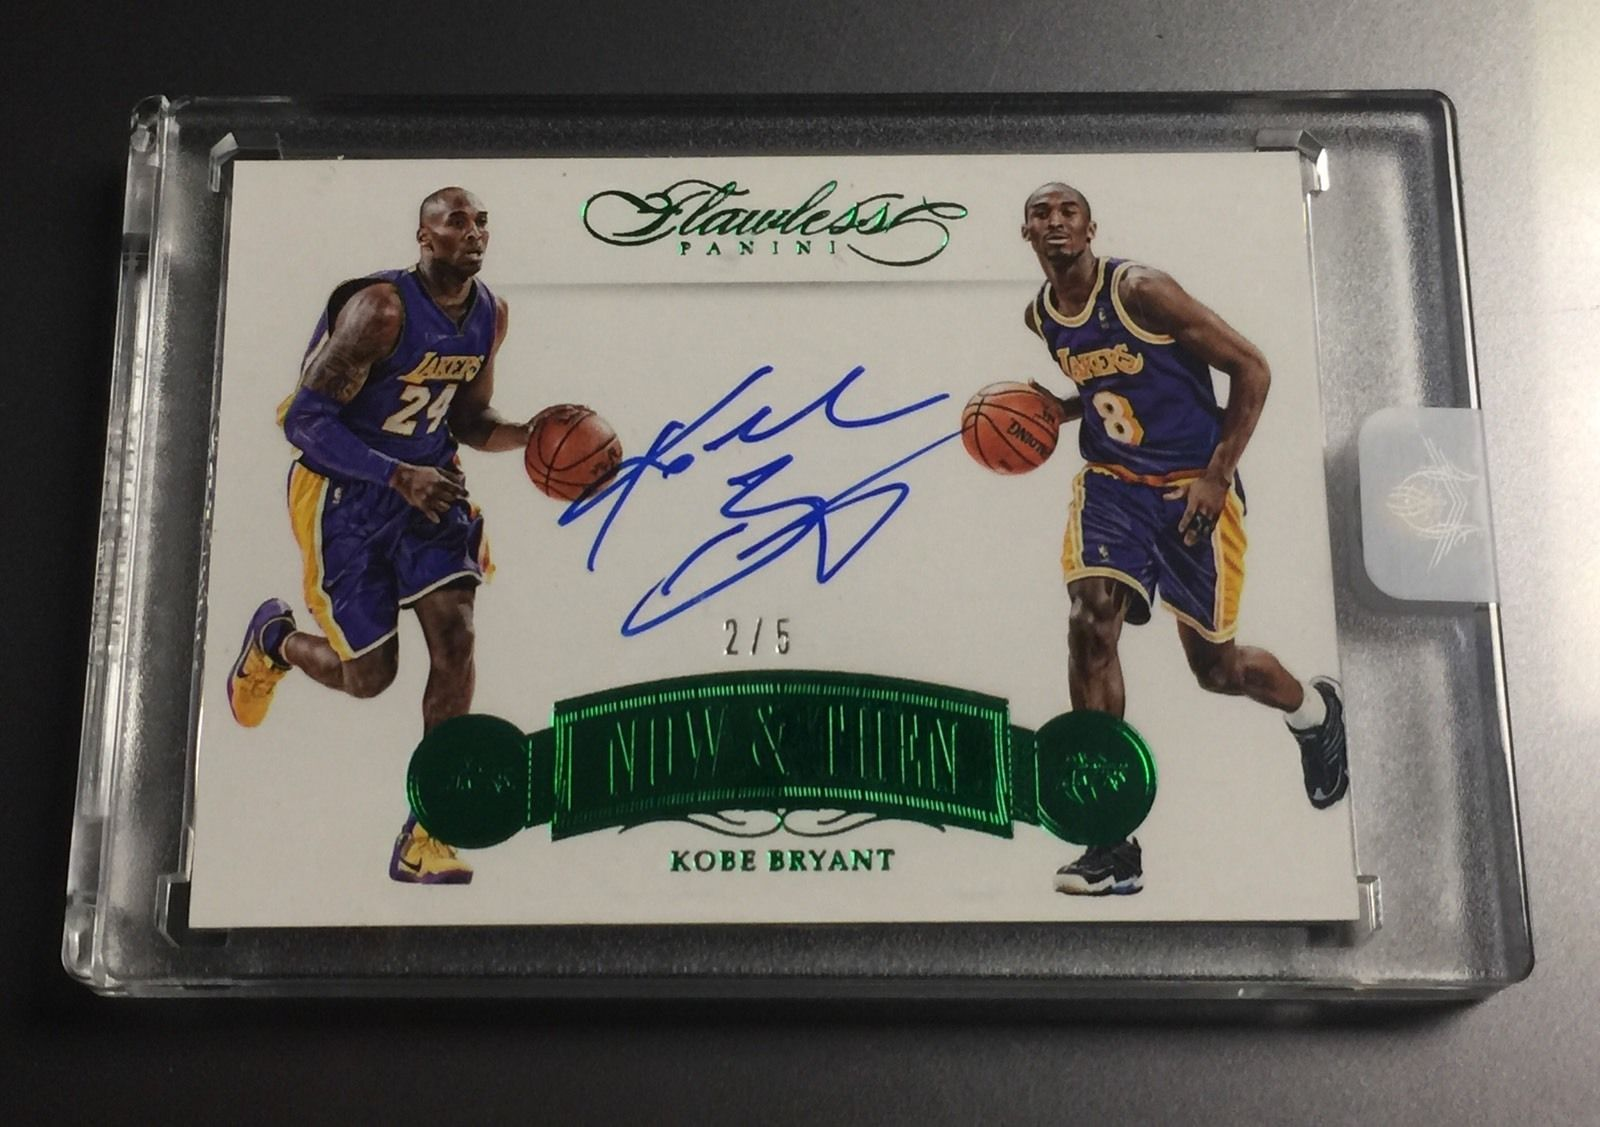 Kobe Bryant Flawless Now And Then Emerald Green Autograph 25 Auto Encased RARE